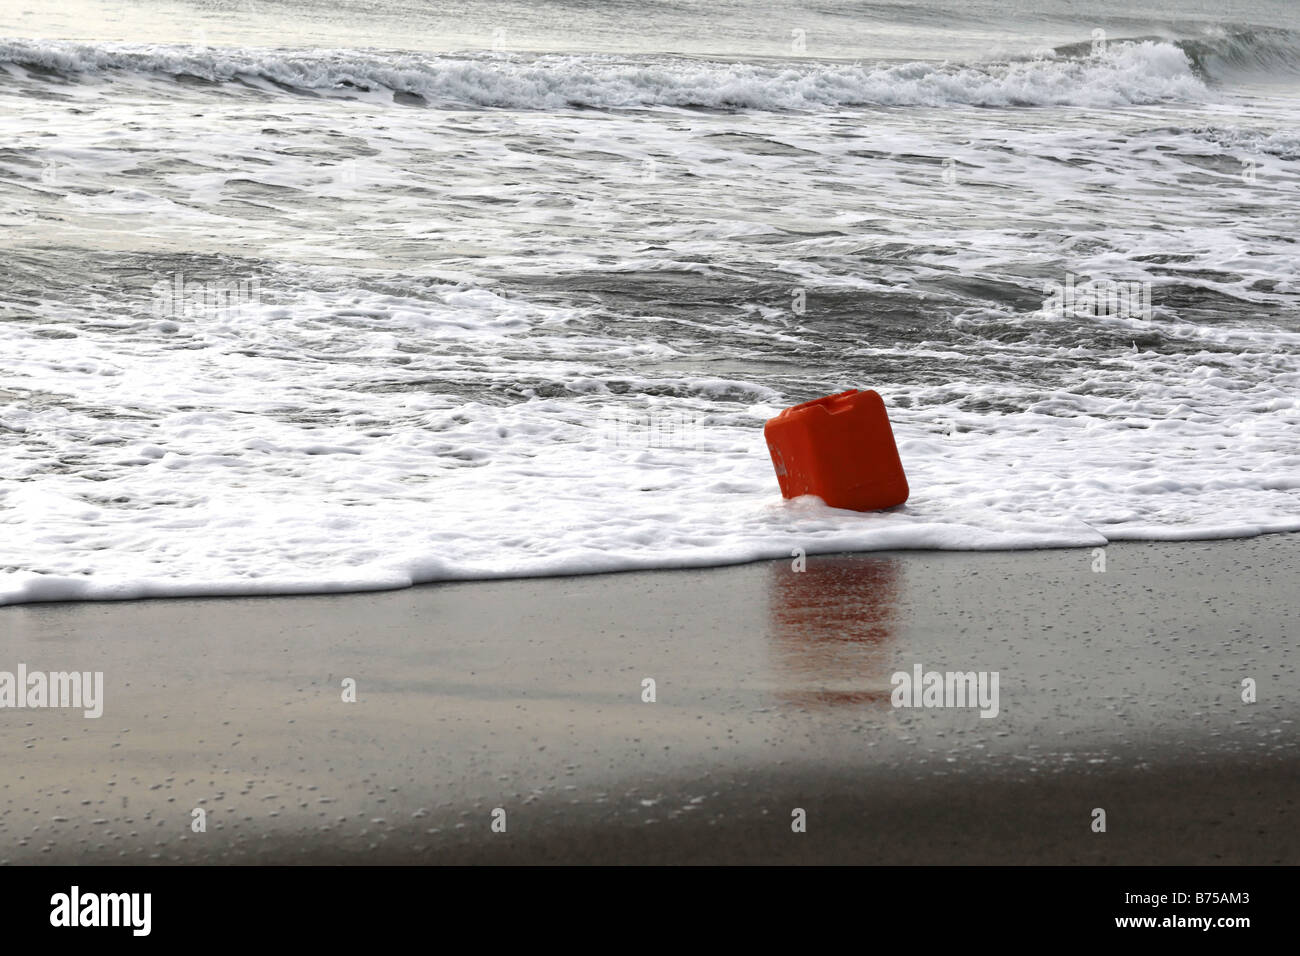 Plastic Container Bottle Washed up on Beach - Stock Image